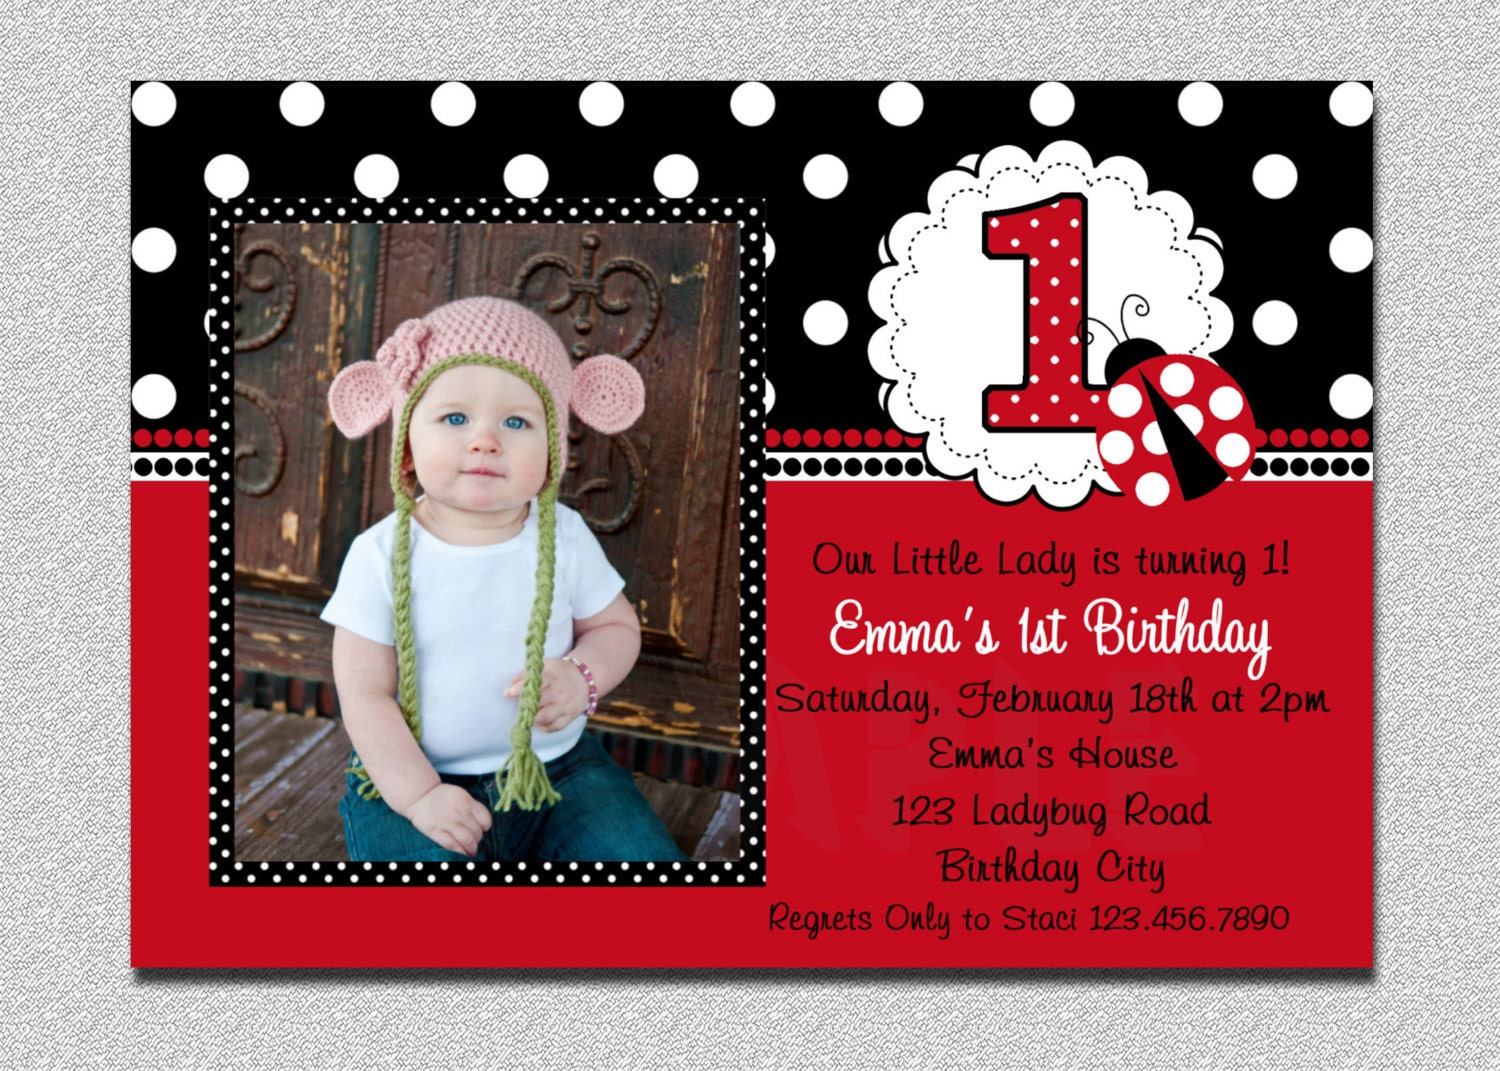 Ladybug 1St Birthday Invitations is the best ideas you have to choose for invitation example